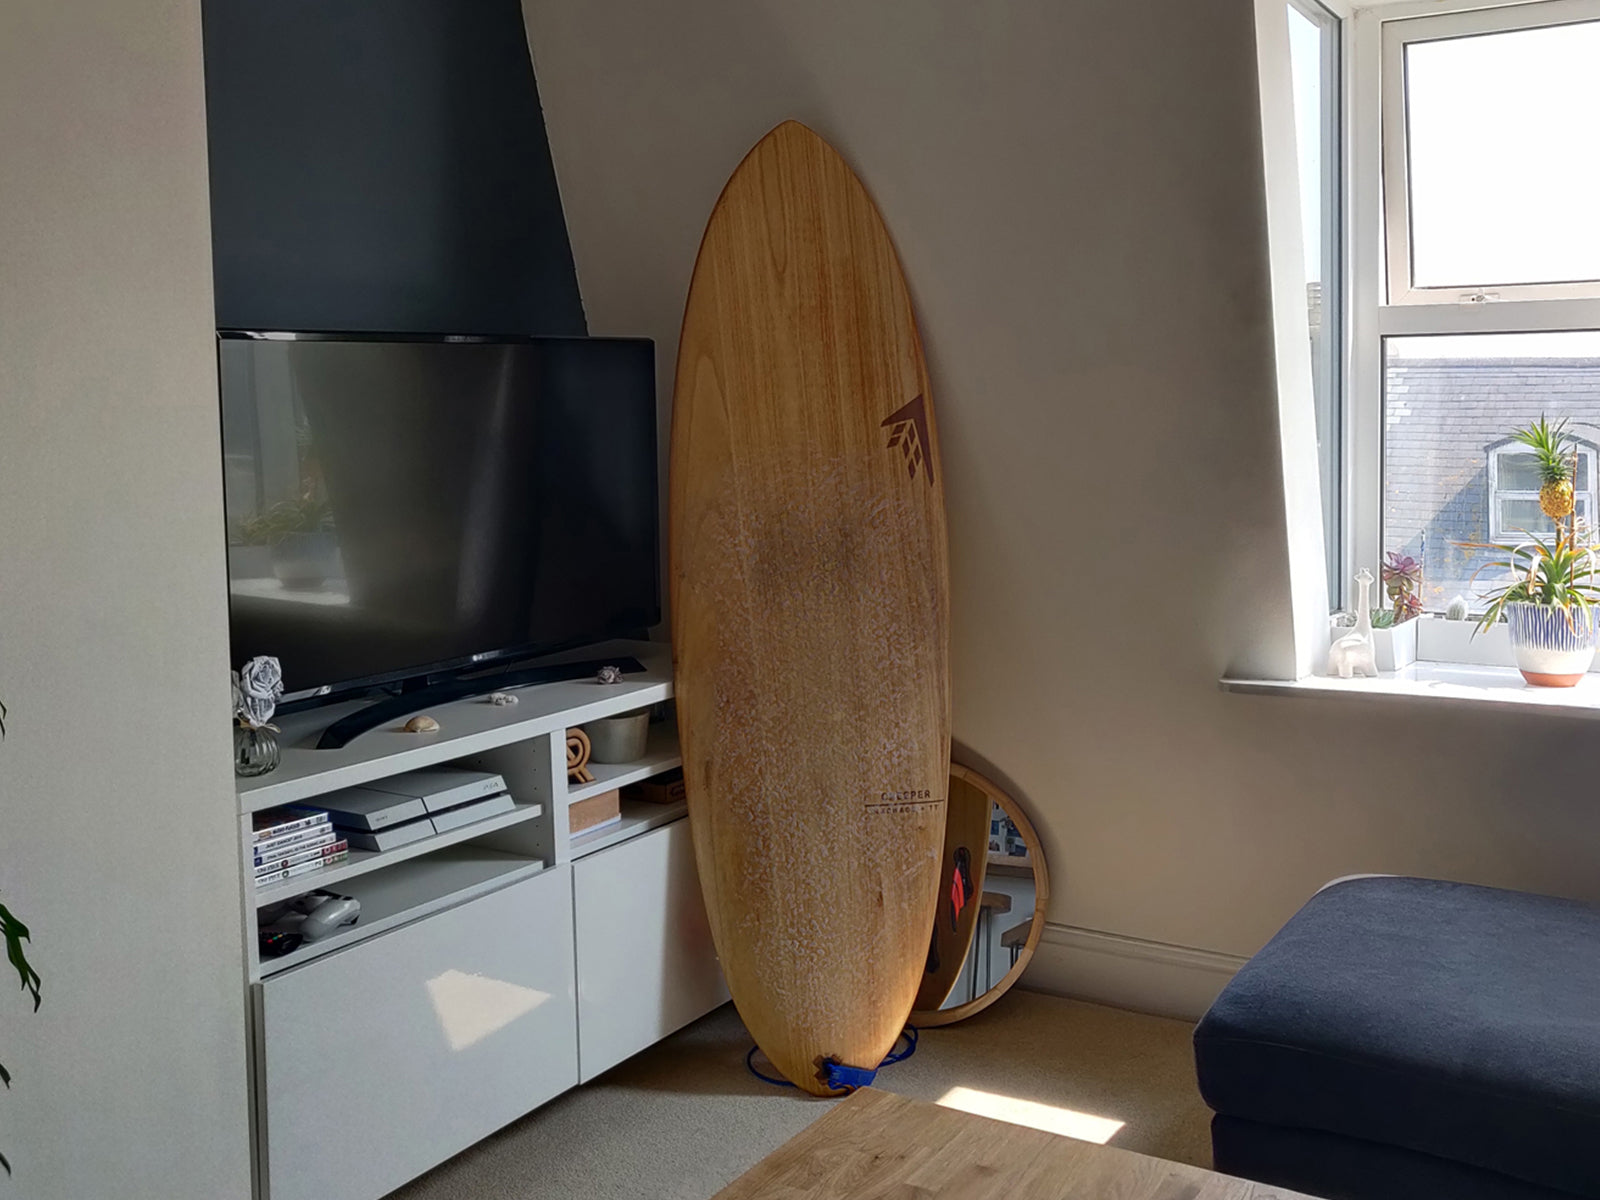 Surfboard at home